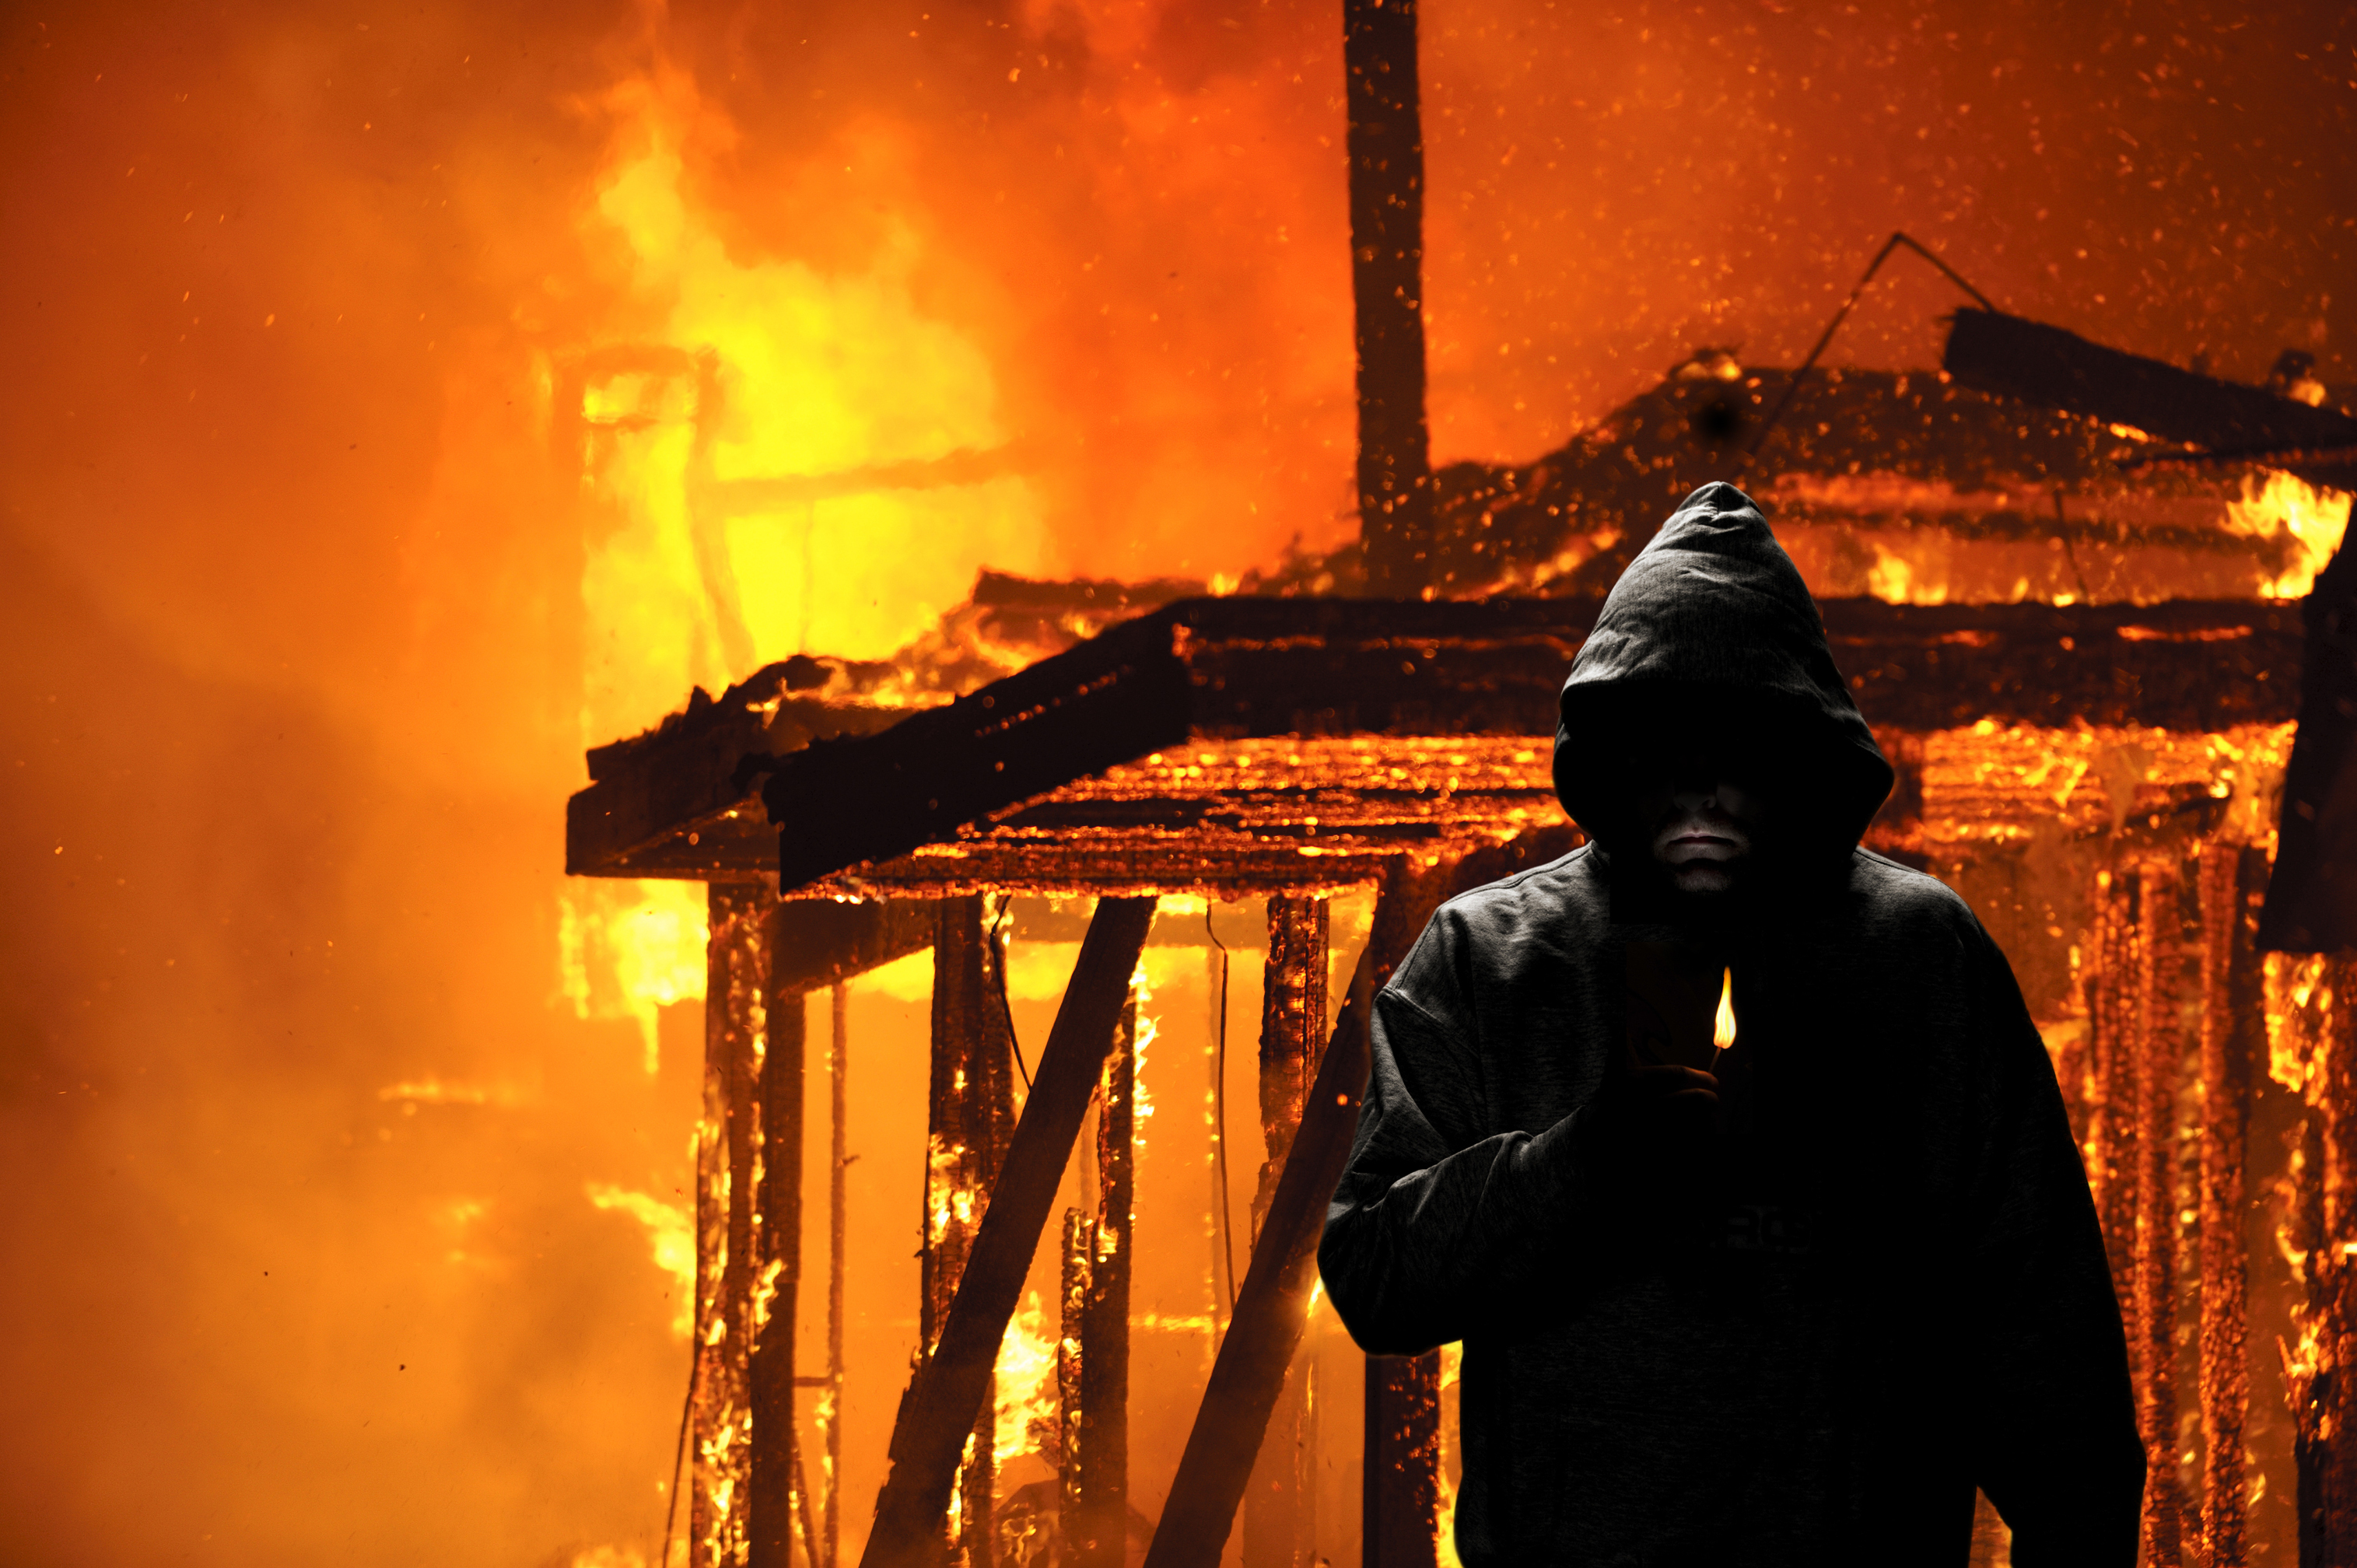 The burden of economic loss to people, local authorities, businesses and communities are considerable. Click to read how to prevent arson.